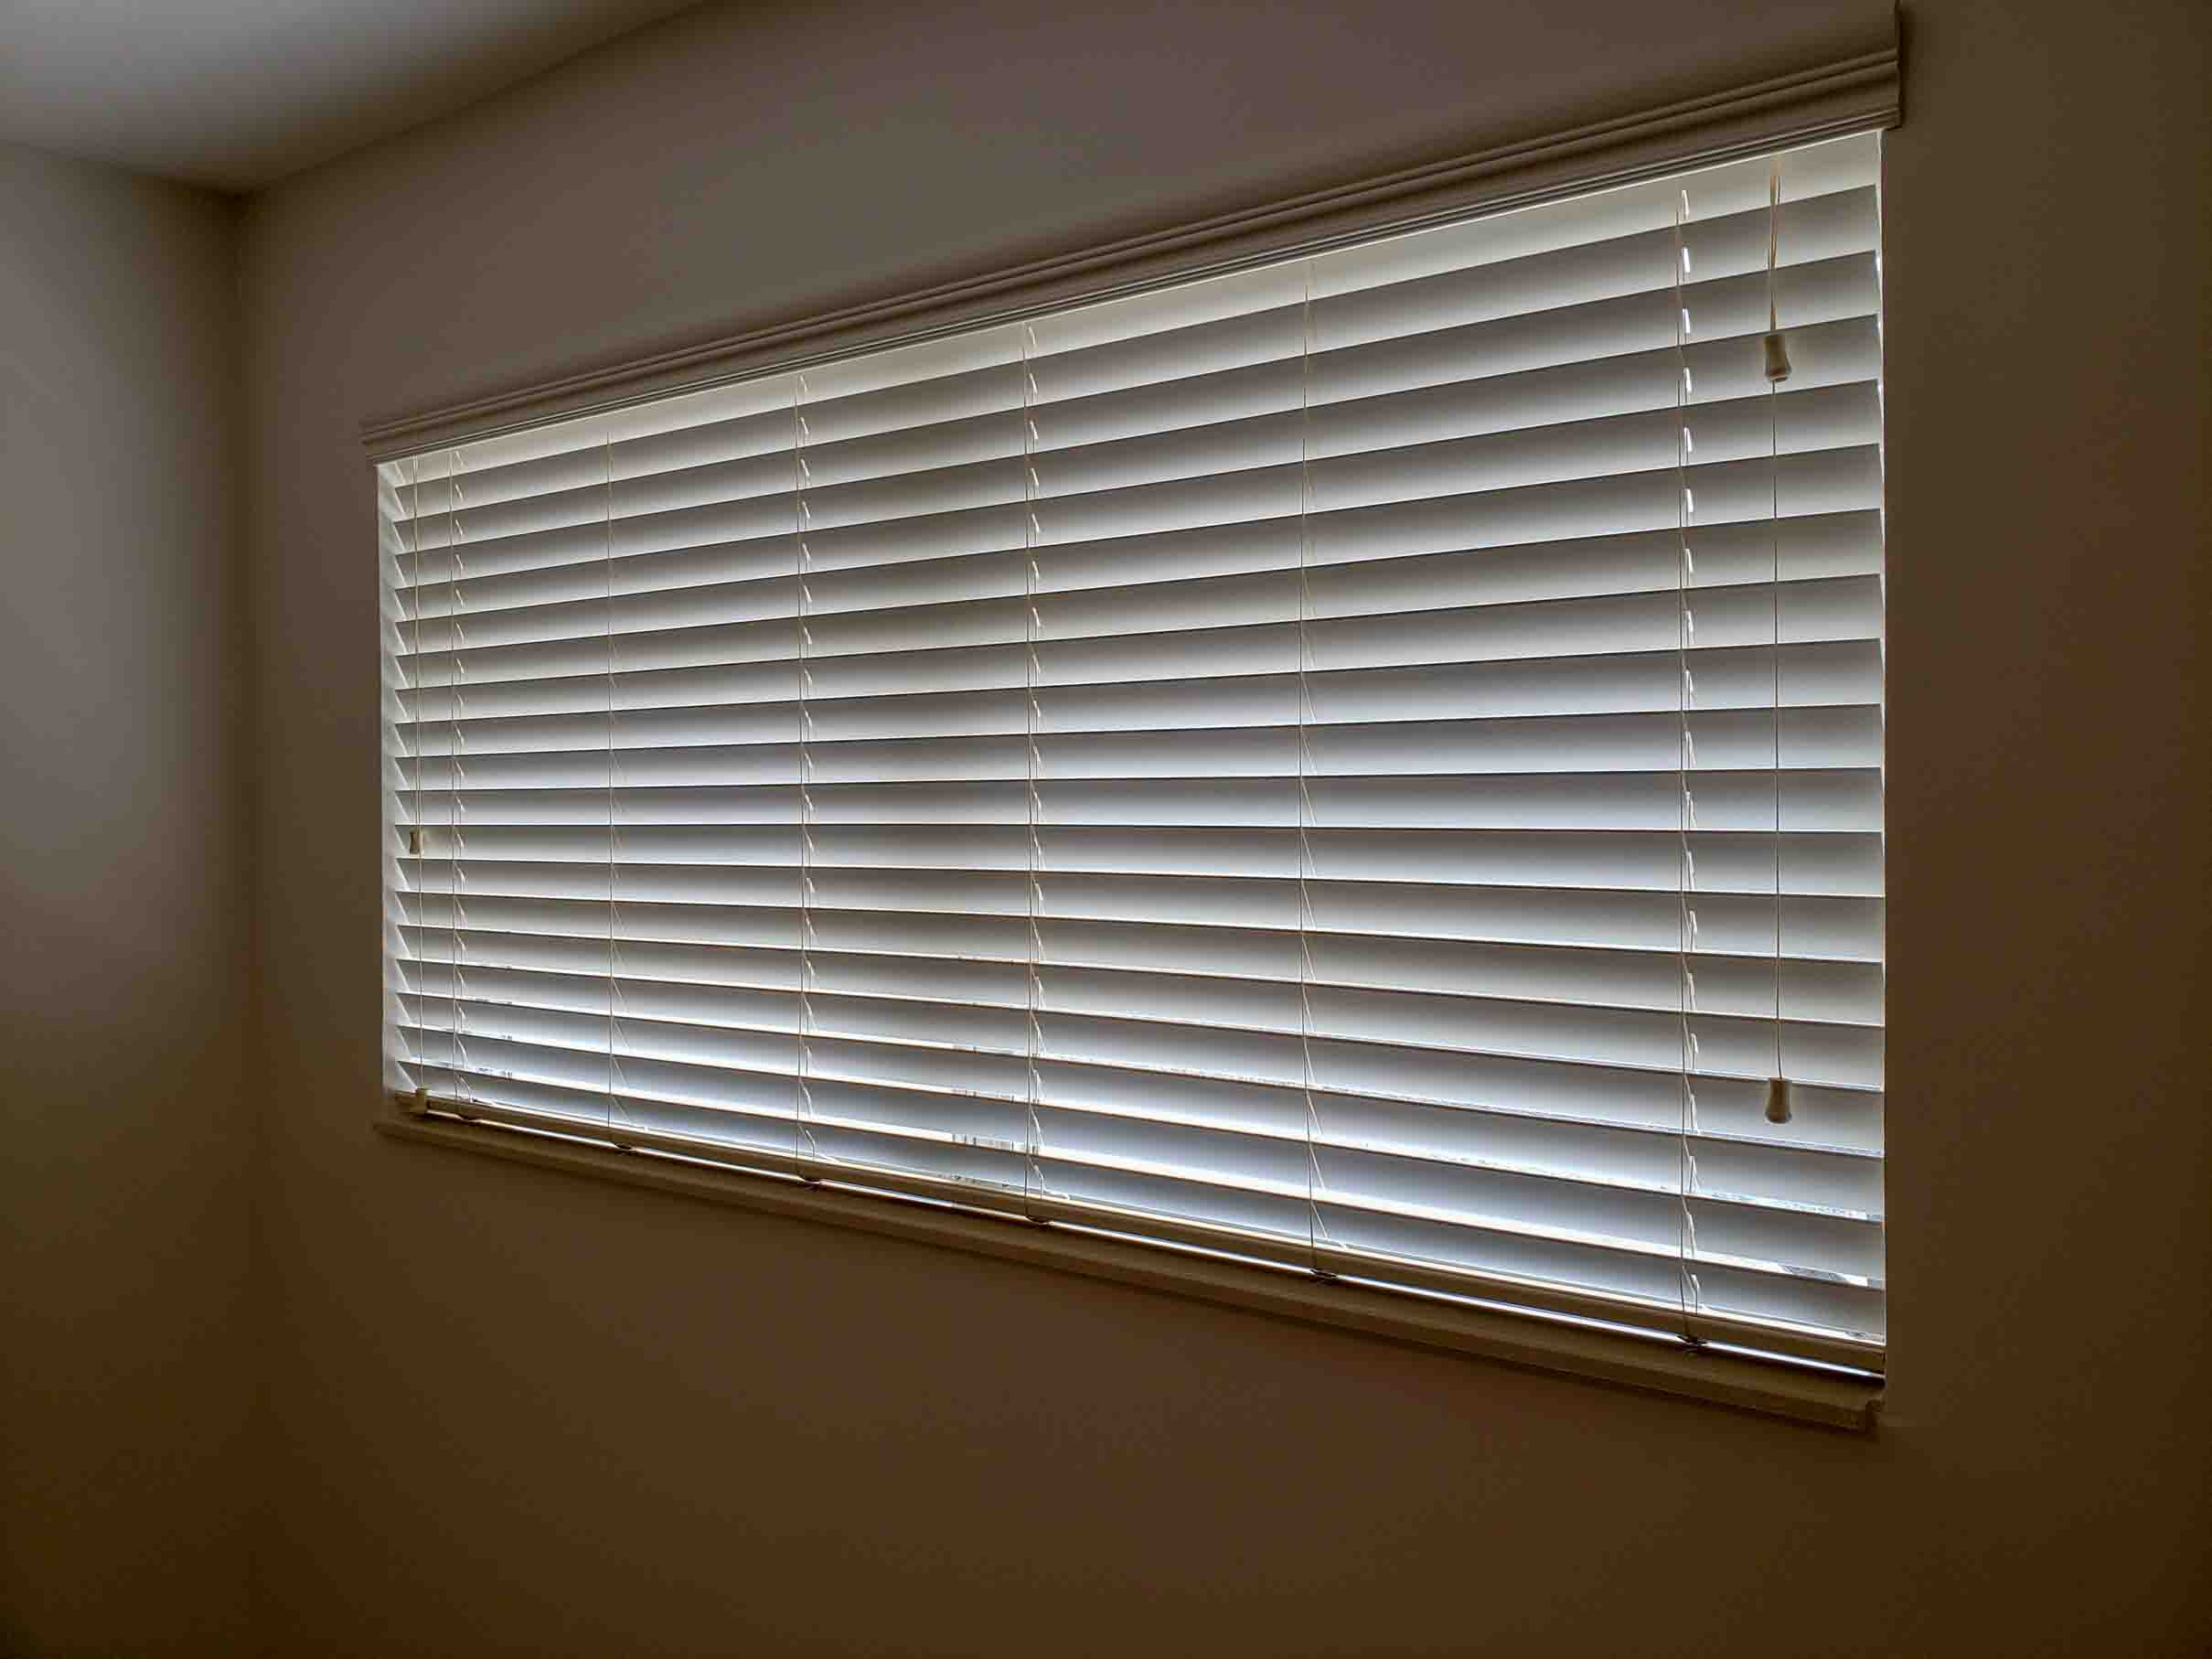 wood blinds gallery WOOD BLINDS GALLERY 20180425 154258